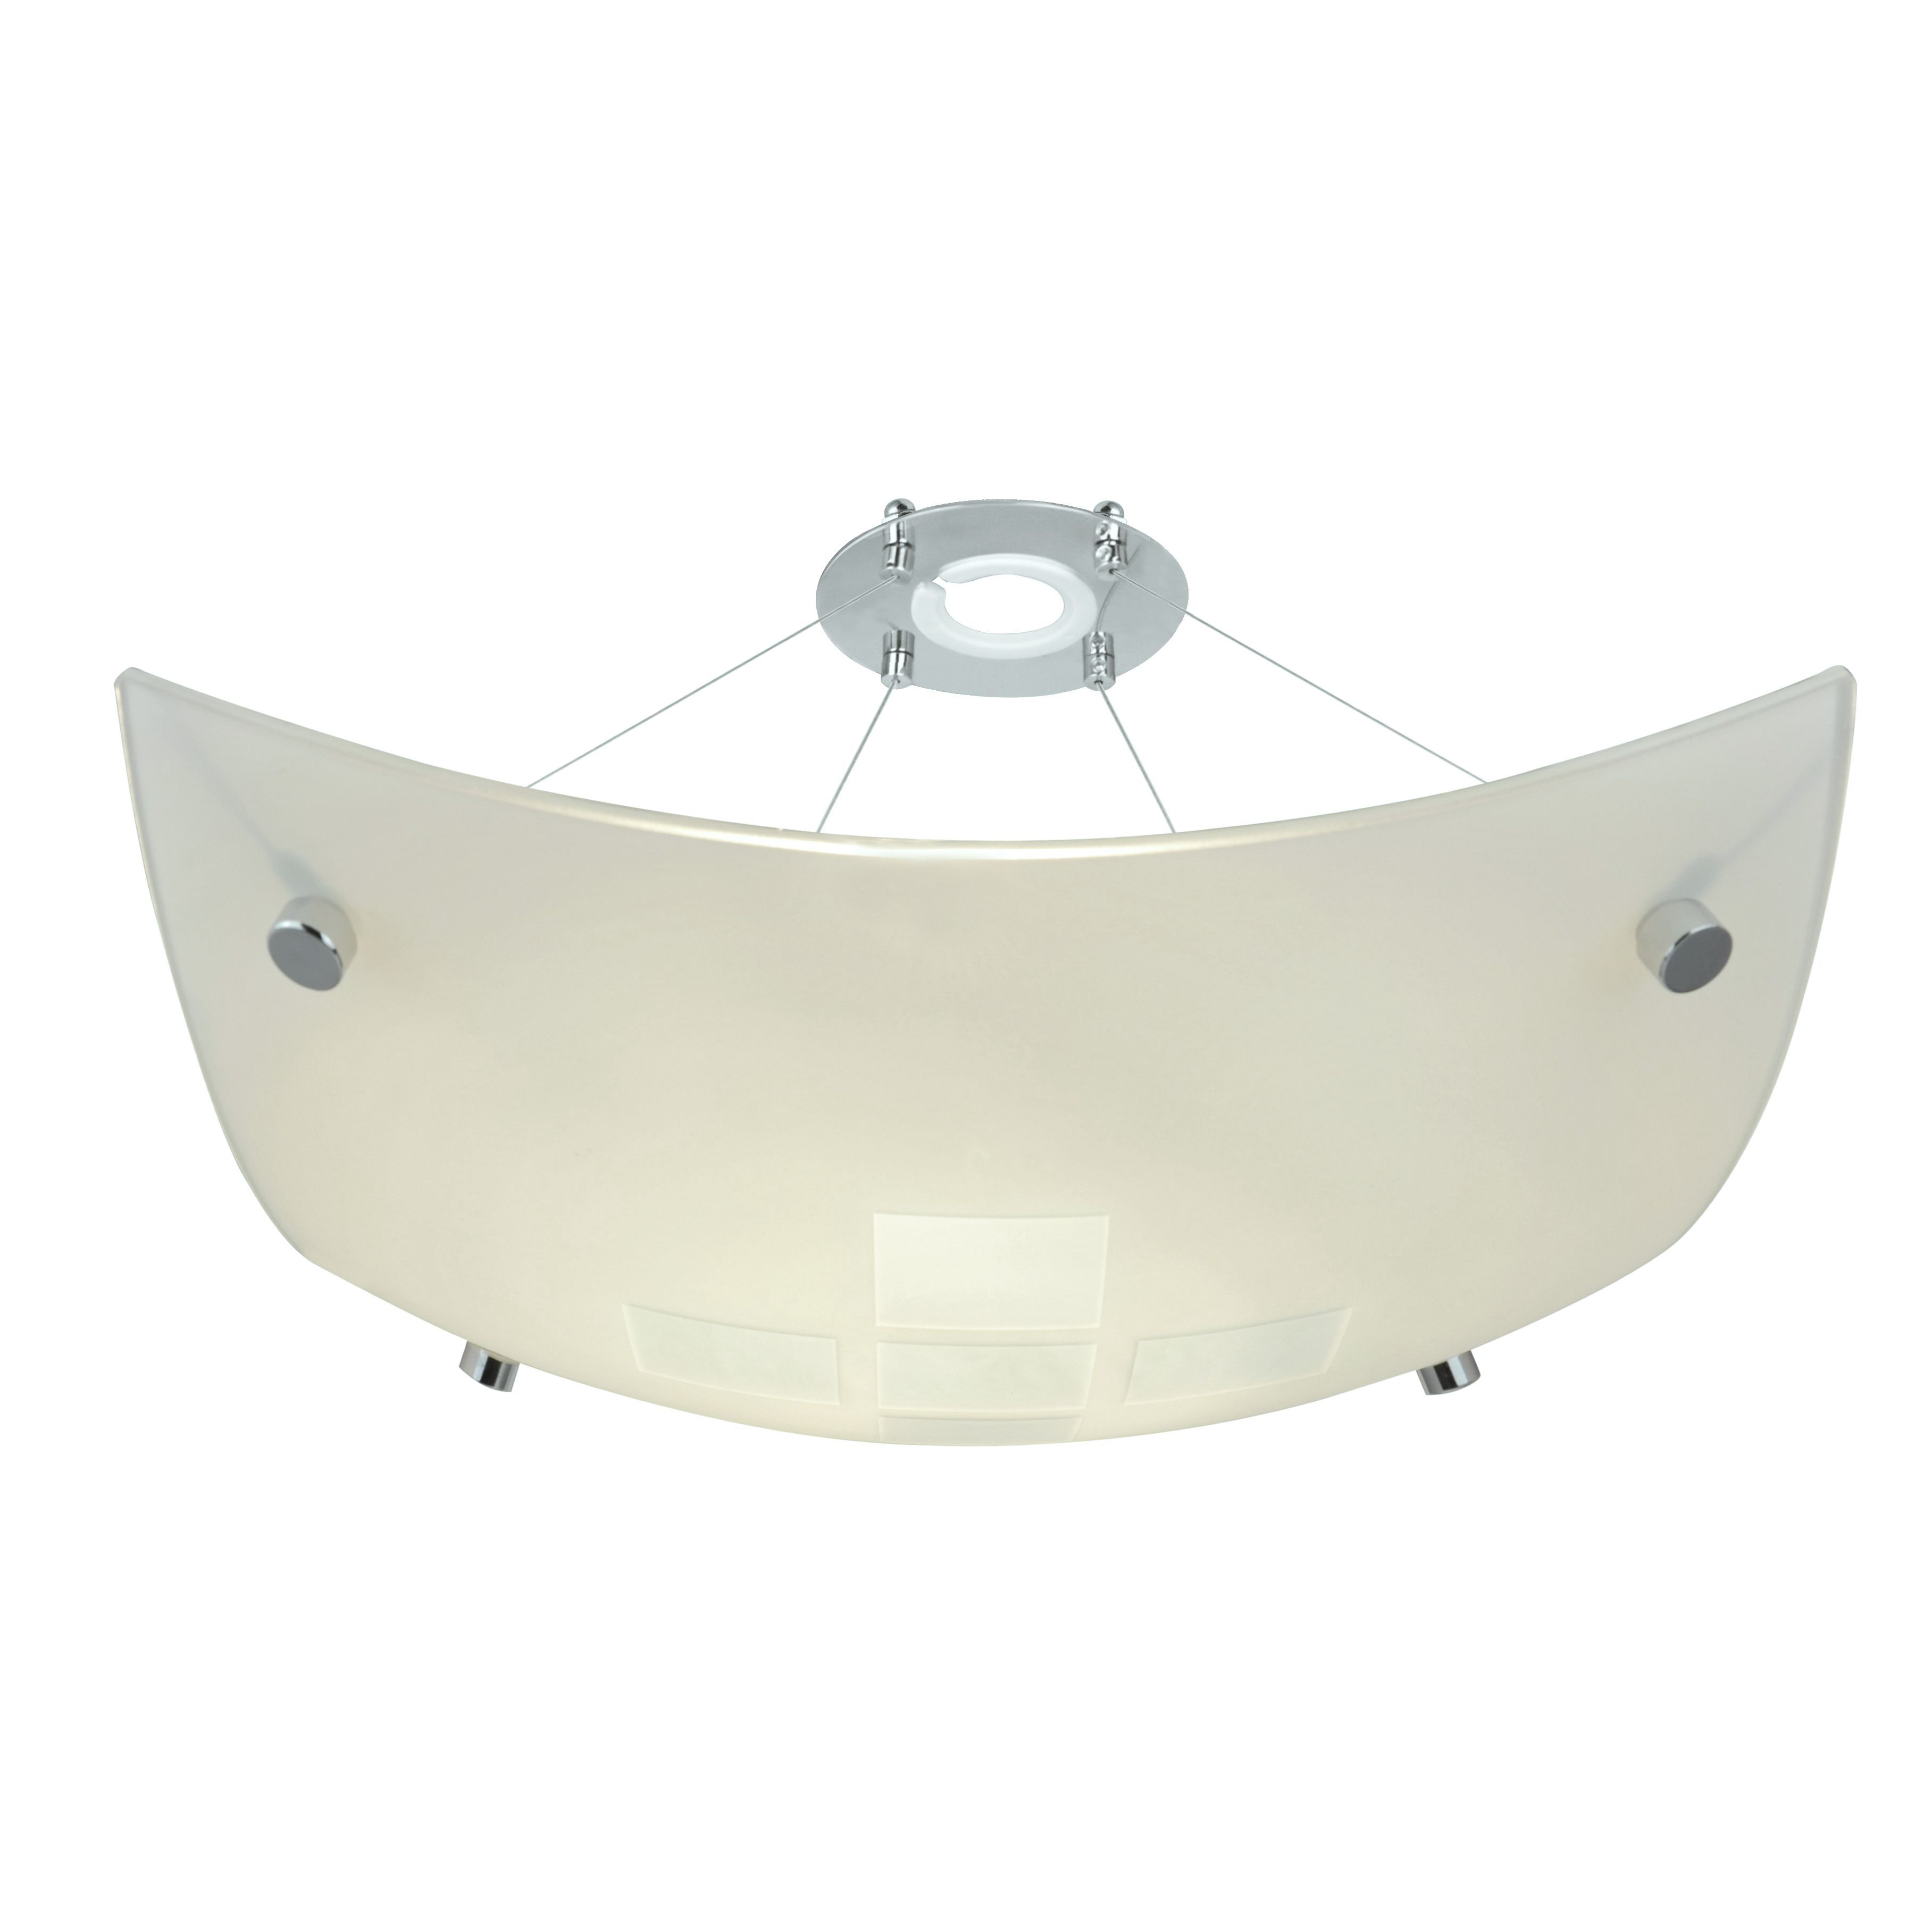 cover fixture picture ceilings square here with ceiling download to image free lights light click